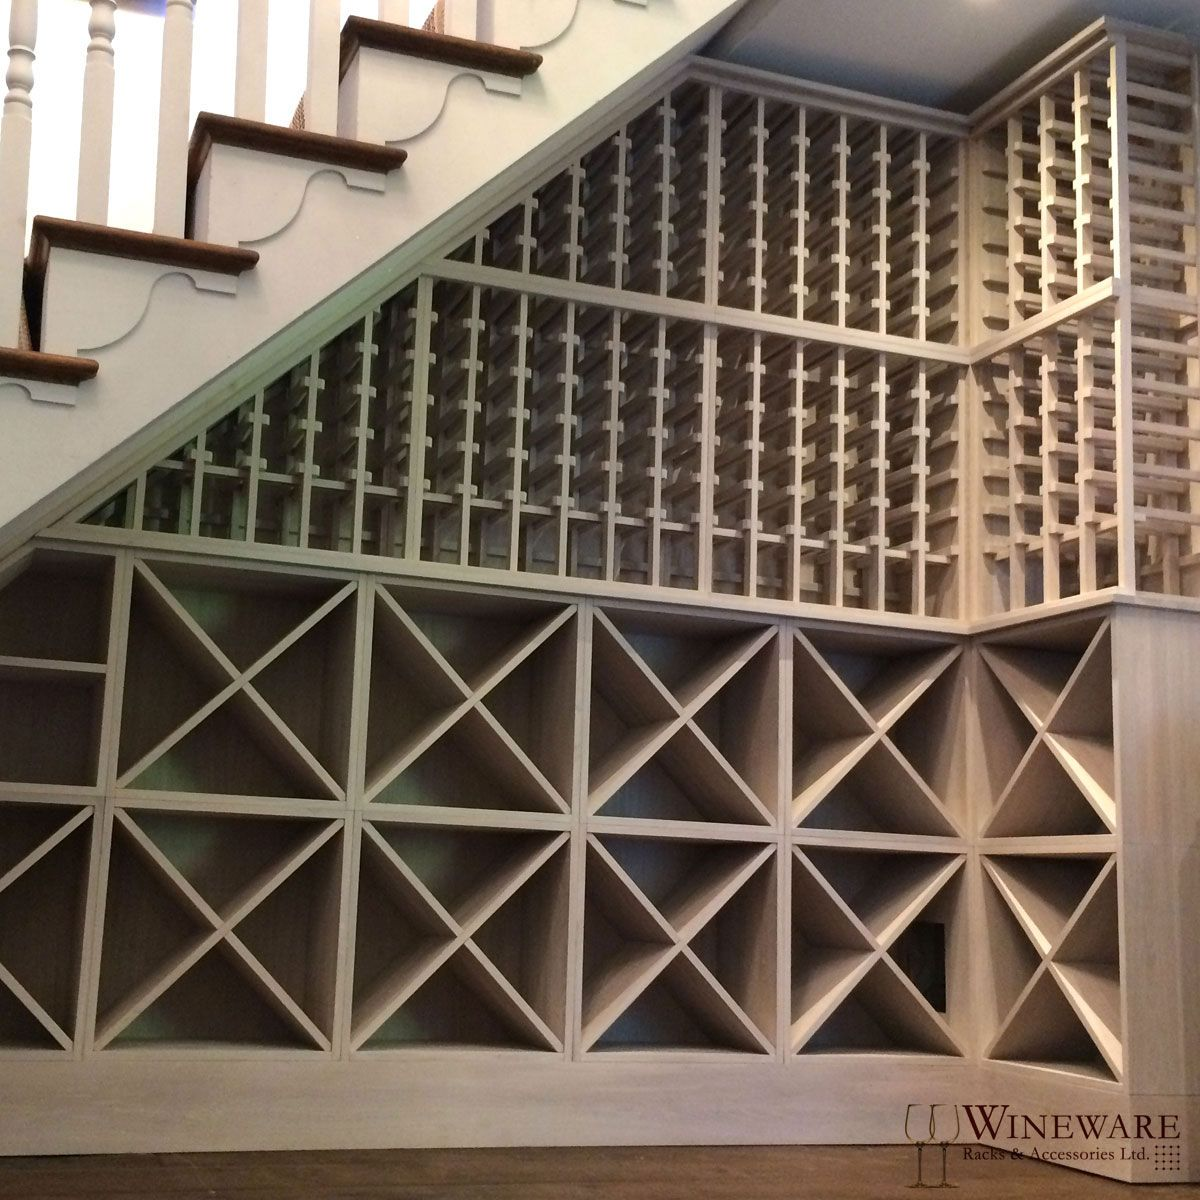 Bespoke Under Stairs Shelving: Bespoke Under Stairs Wine Racking Project Installed In